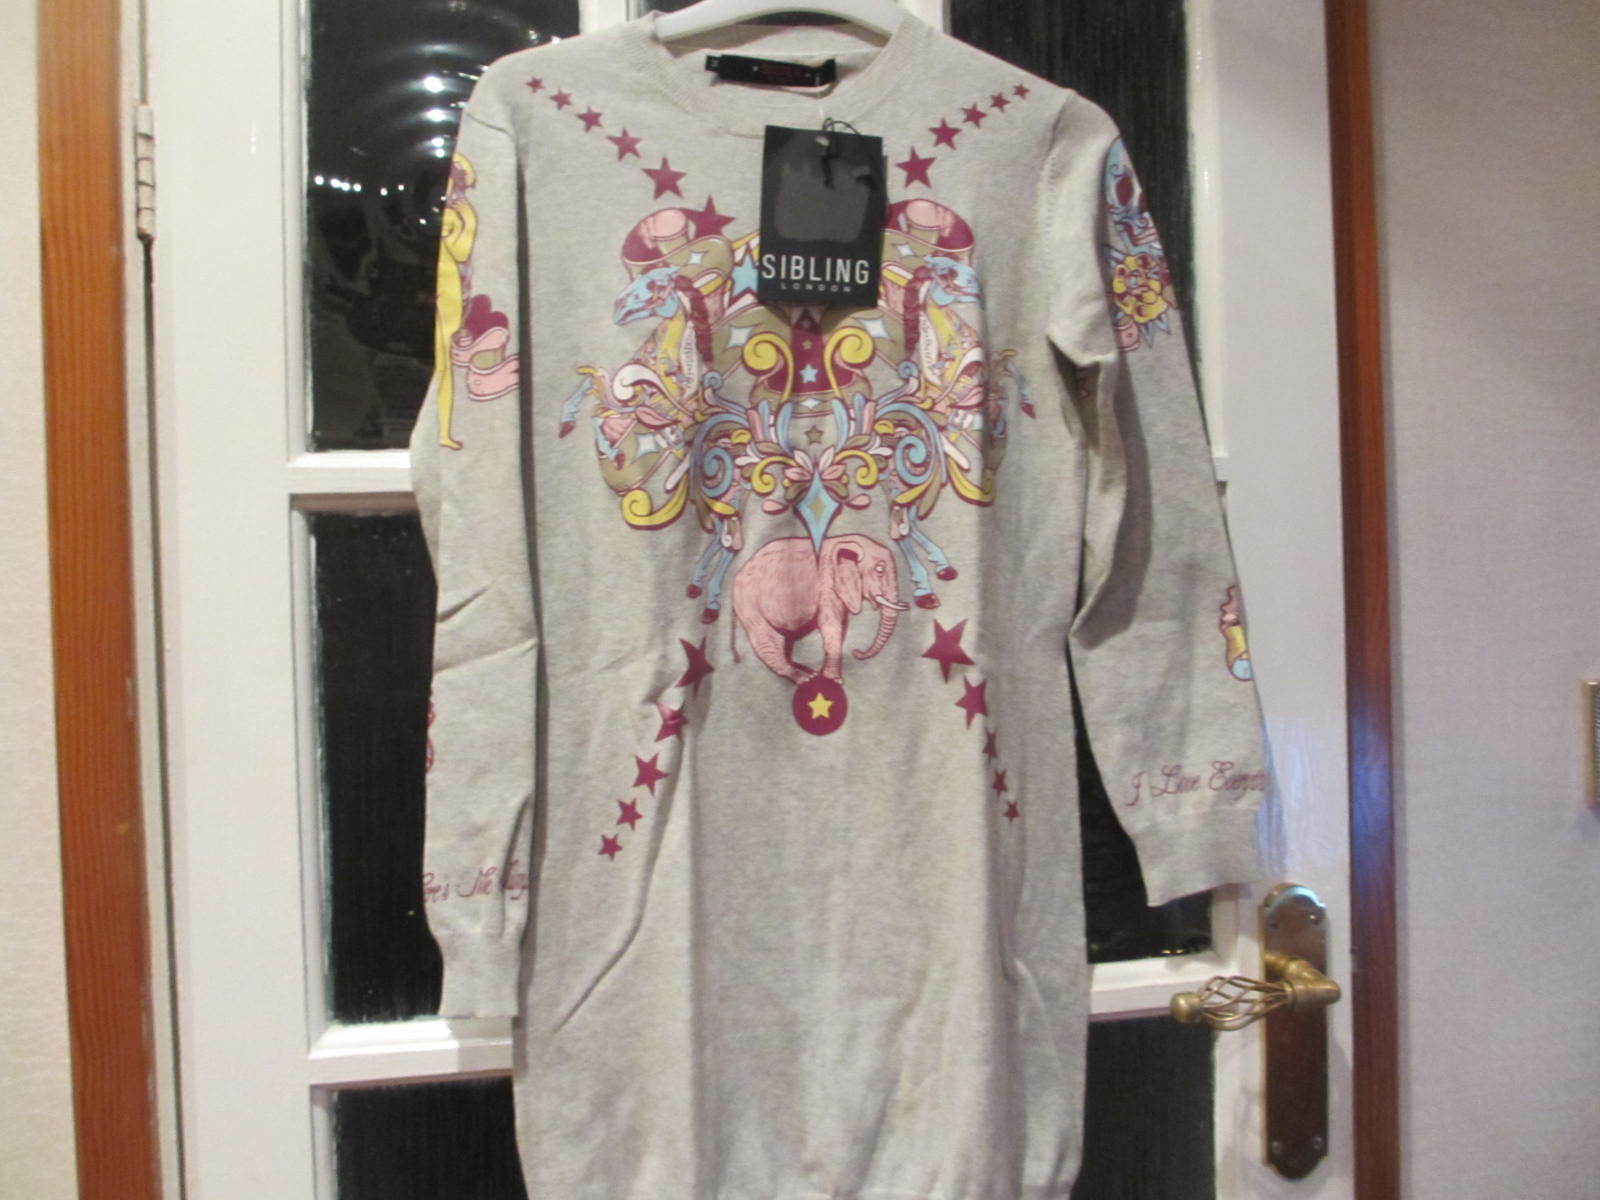 SISTER BY SIBLING WOMEN'S PINK FAIRGROUND ATTRACTION JUMPER - SIZE EXTRA SMALL